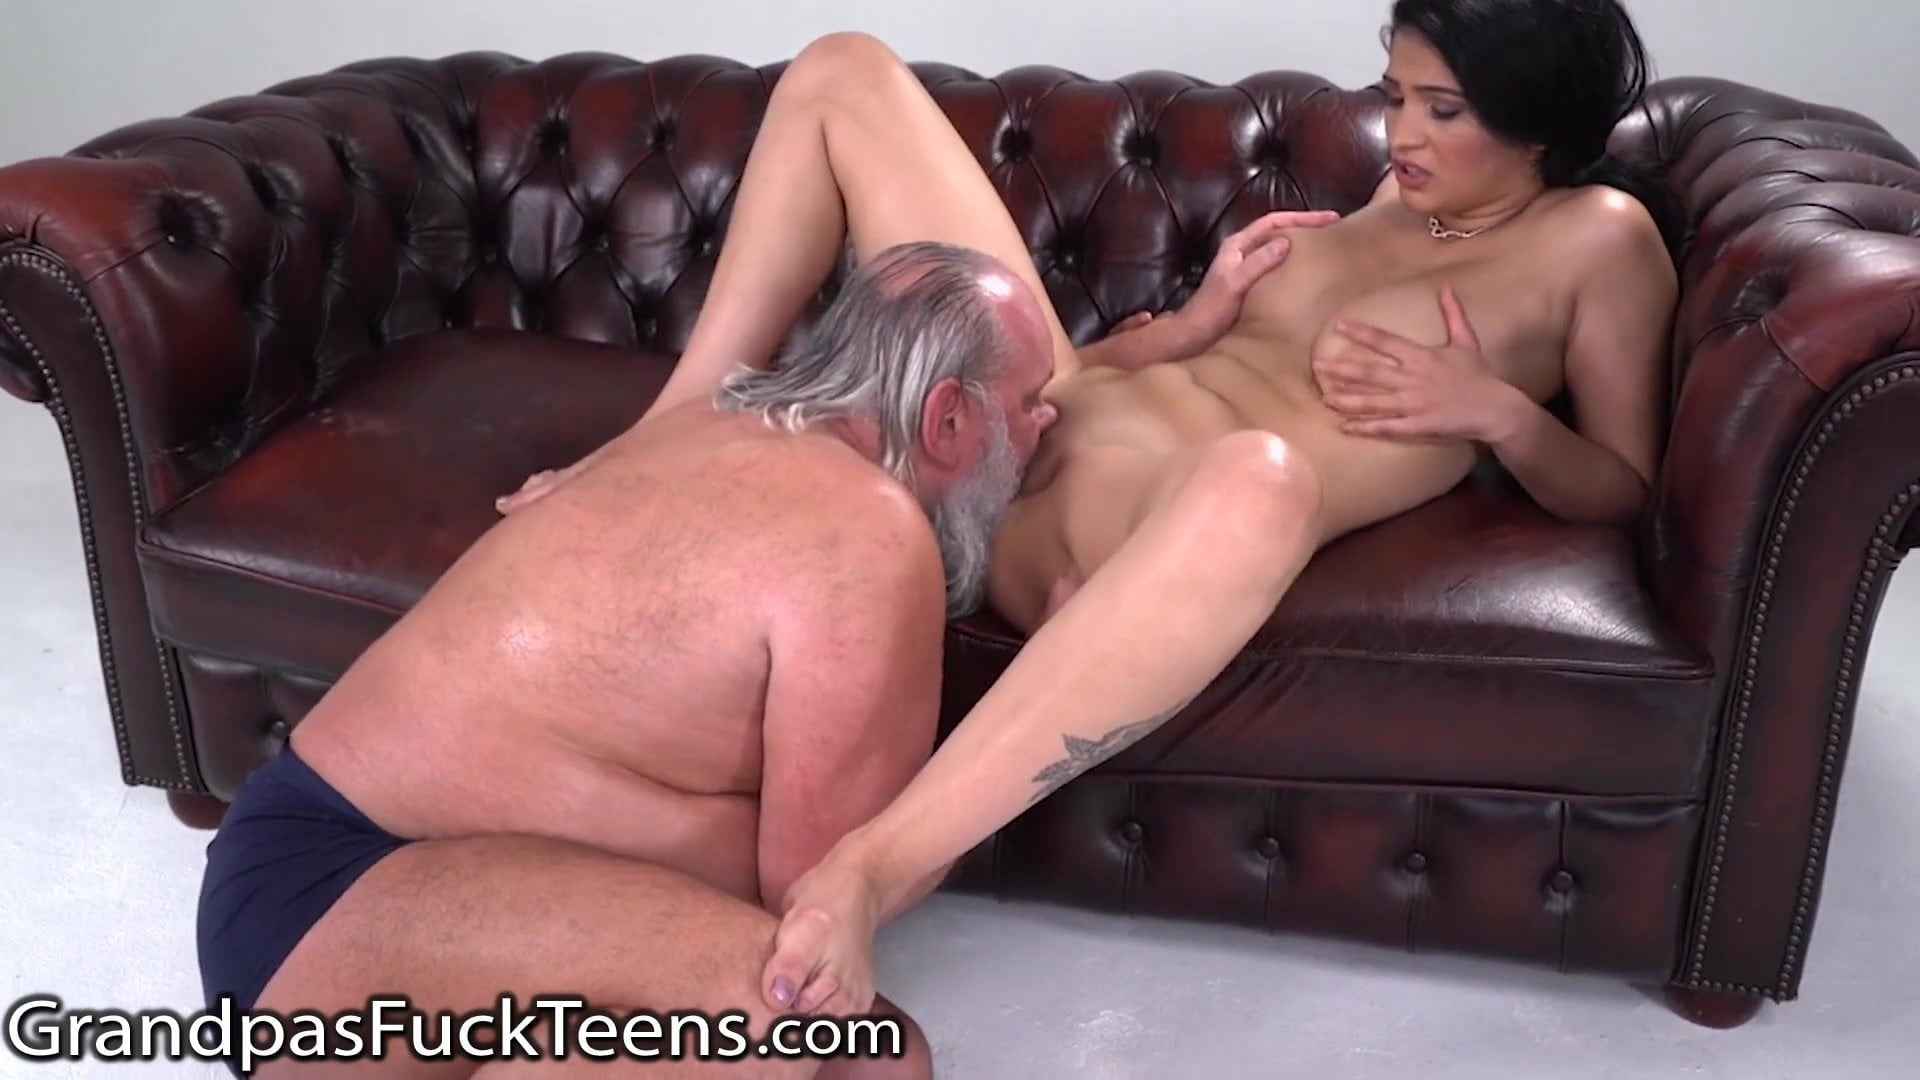 GrandpasFuckTeens Outdated Man Barely Pulls Out of Busty Teen